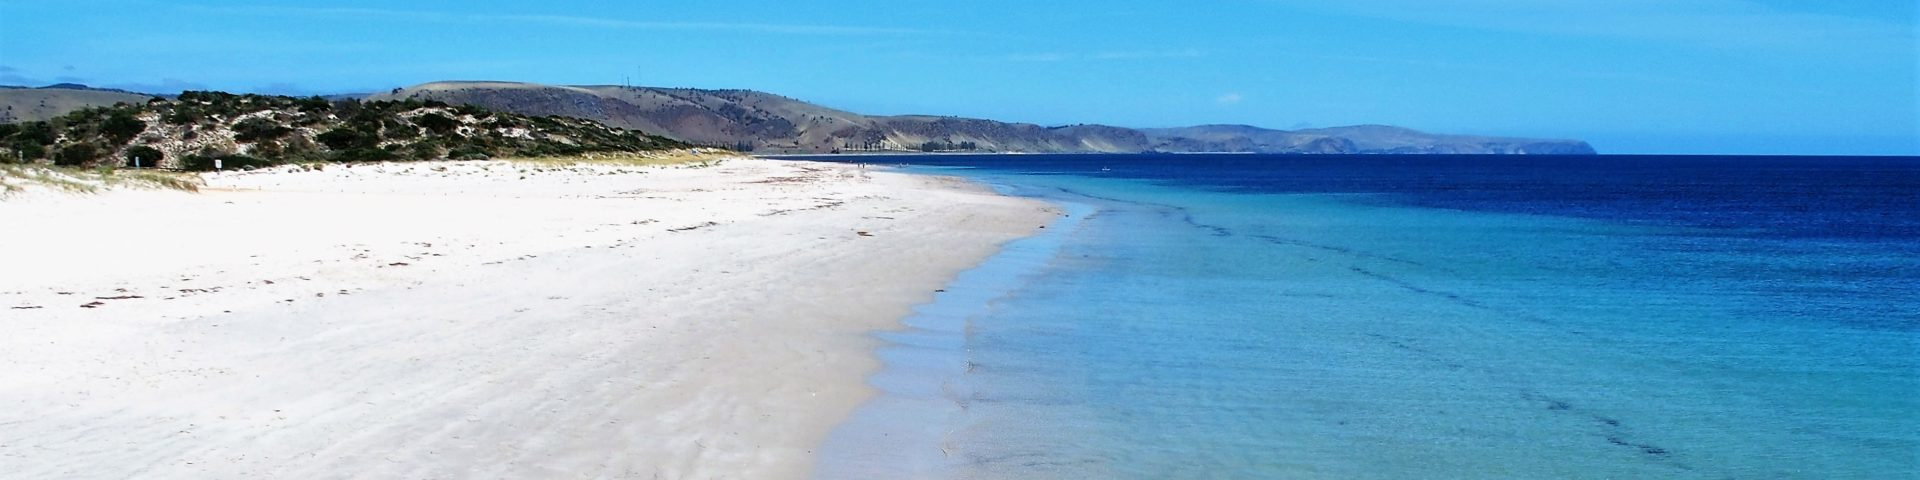 Normanville Beach, Fleurieu Peninsula, Adelaide, South Australia